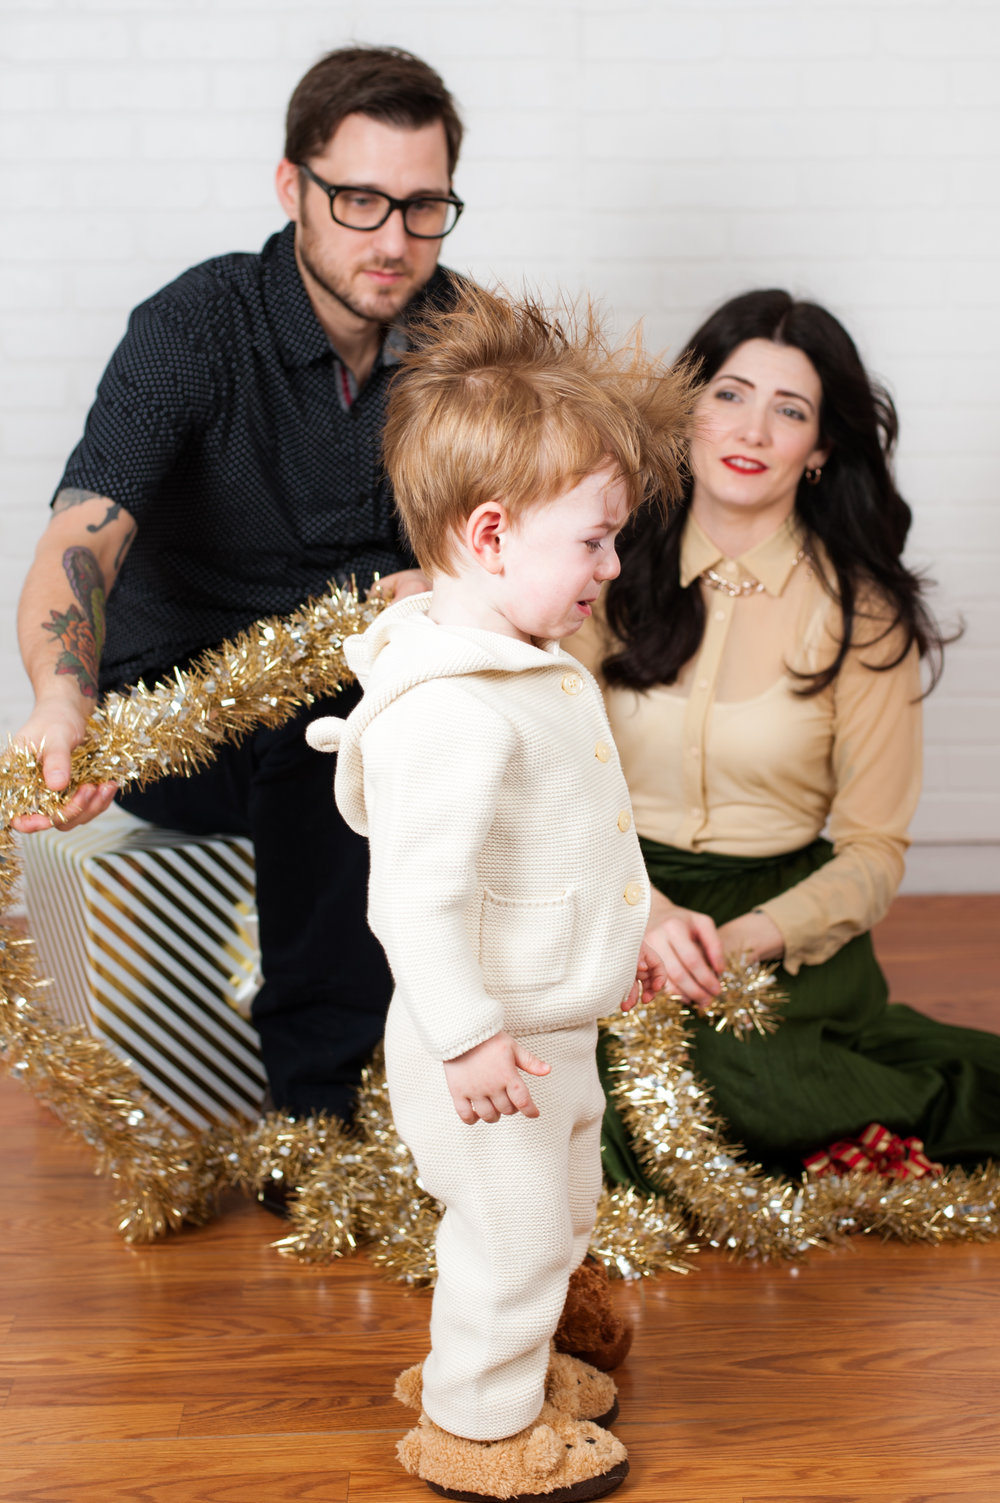 I asked one of my favorite families to sit for a Holiday Promo last year and the results were amazing! Also, their coordination was on point.